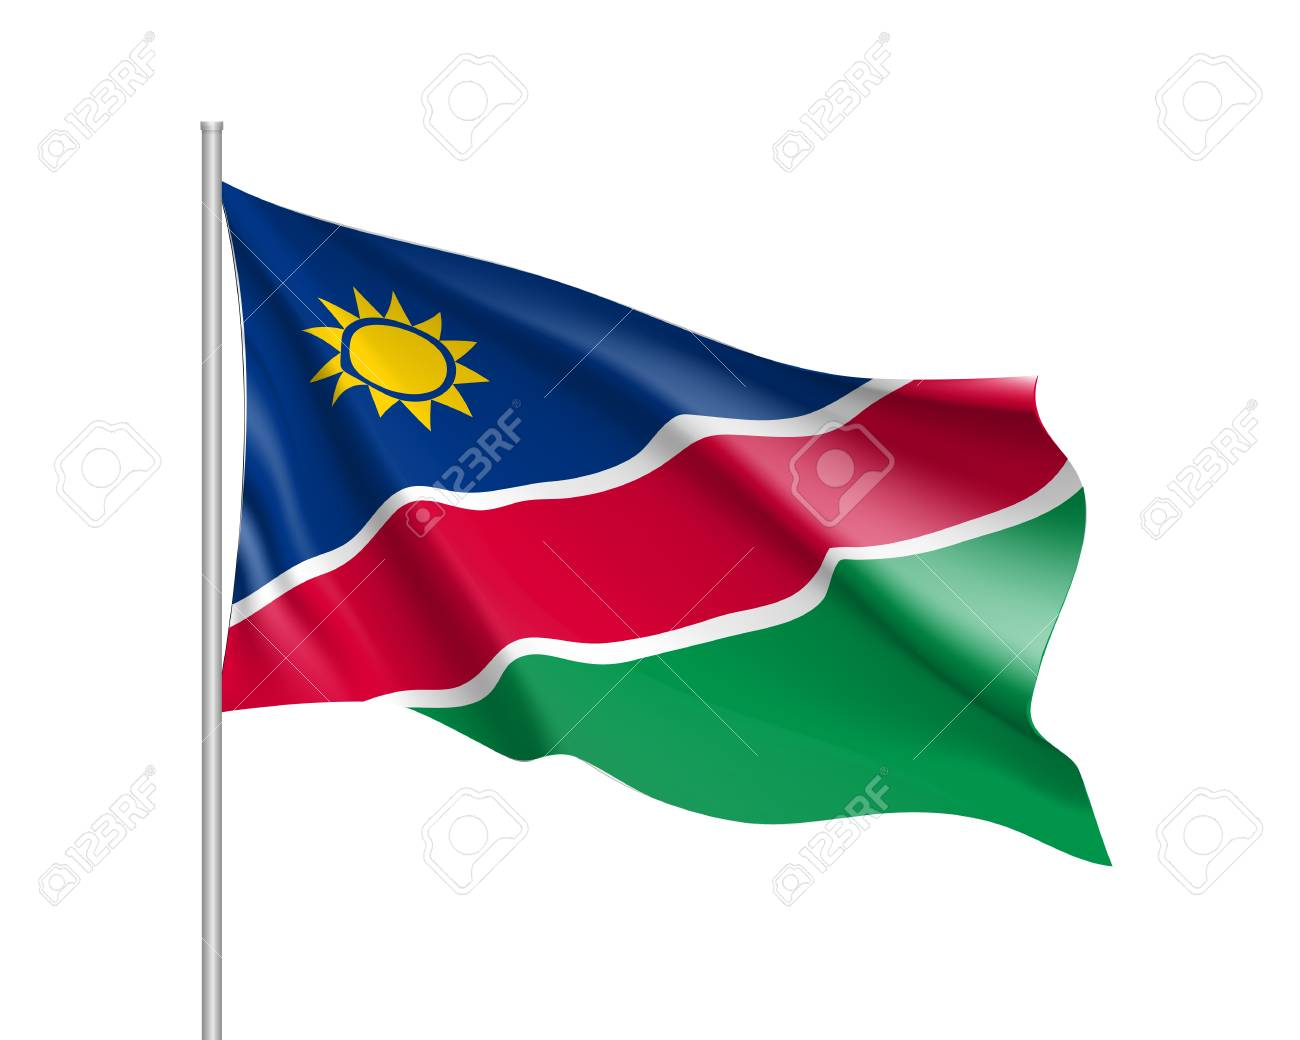 84116234 Namibia Flag Illustration Of African Country Waving Flag On Flagpole Vector 3d Icon Isolated On Whit